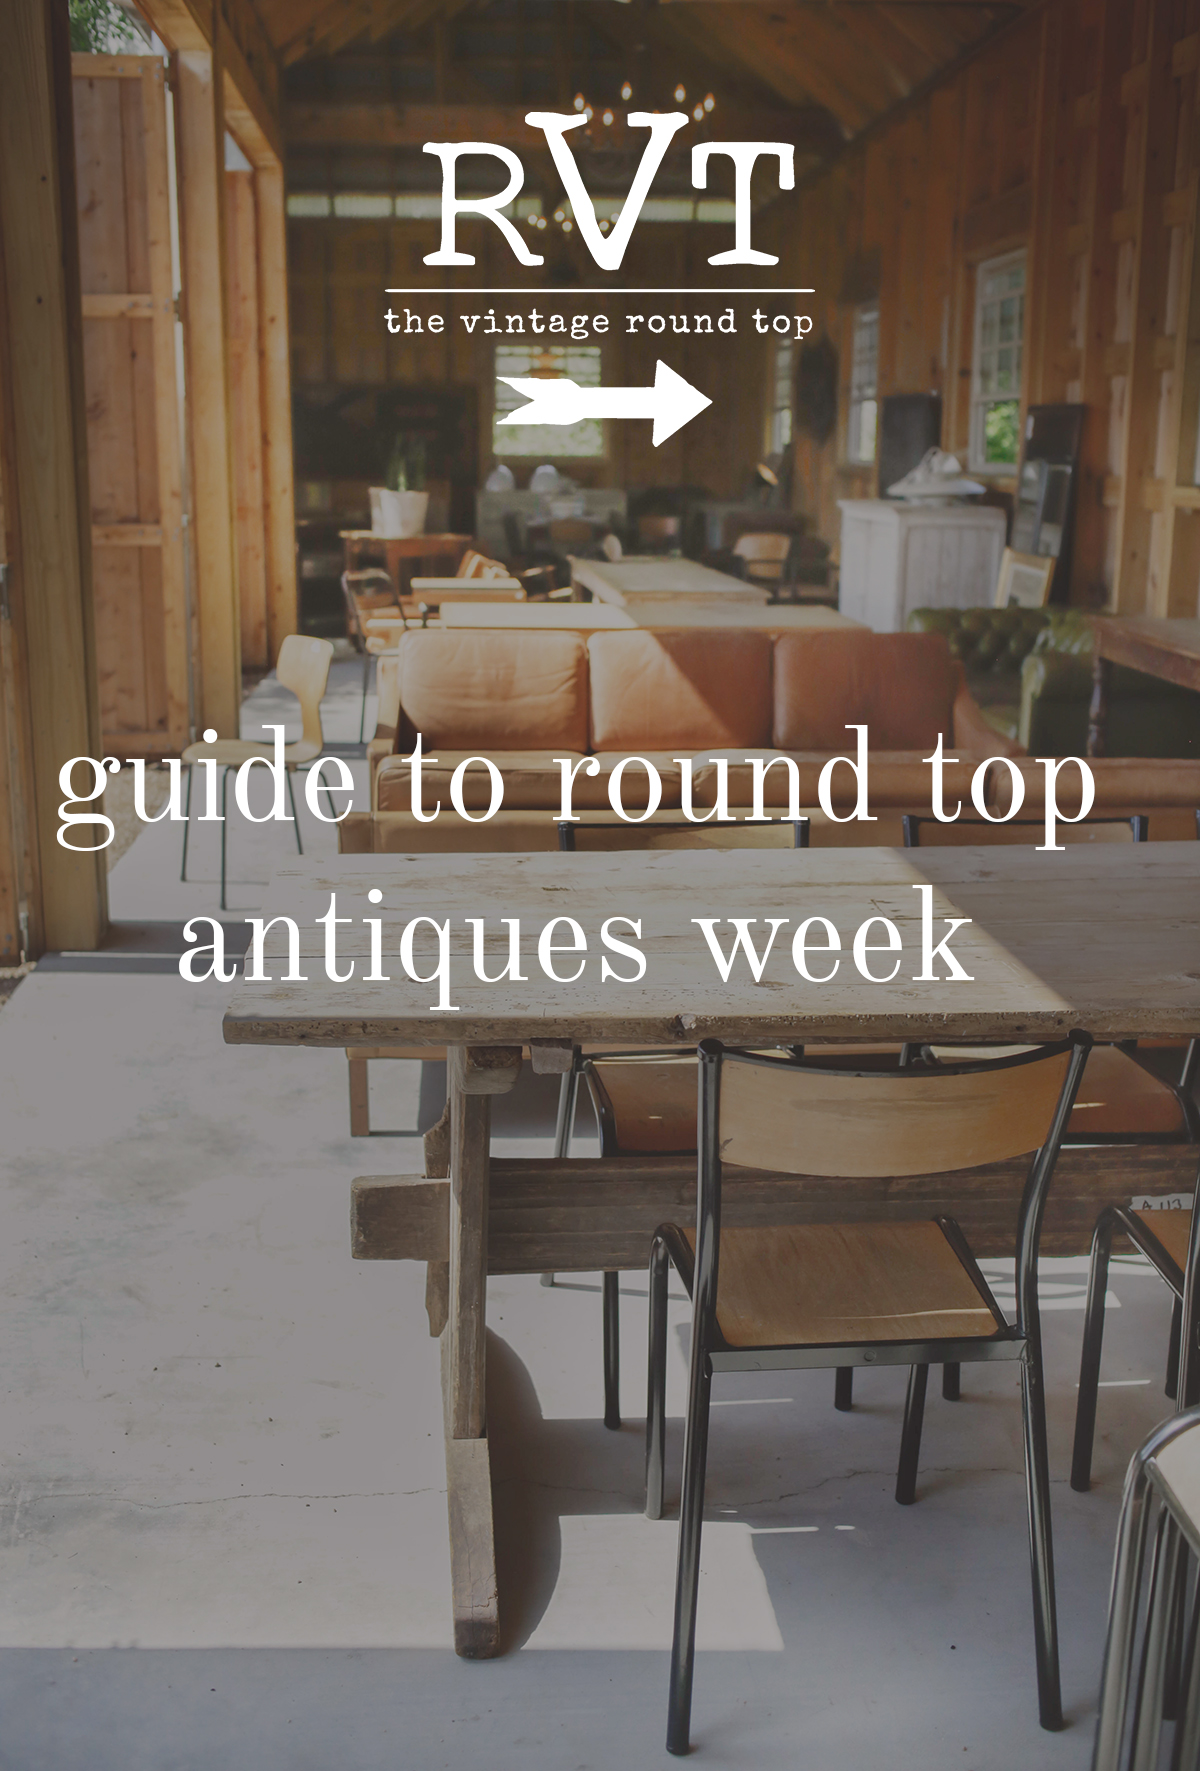 Guide to Round Top Antiques Week / The Vintage Round Top